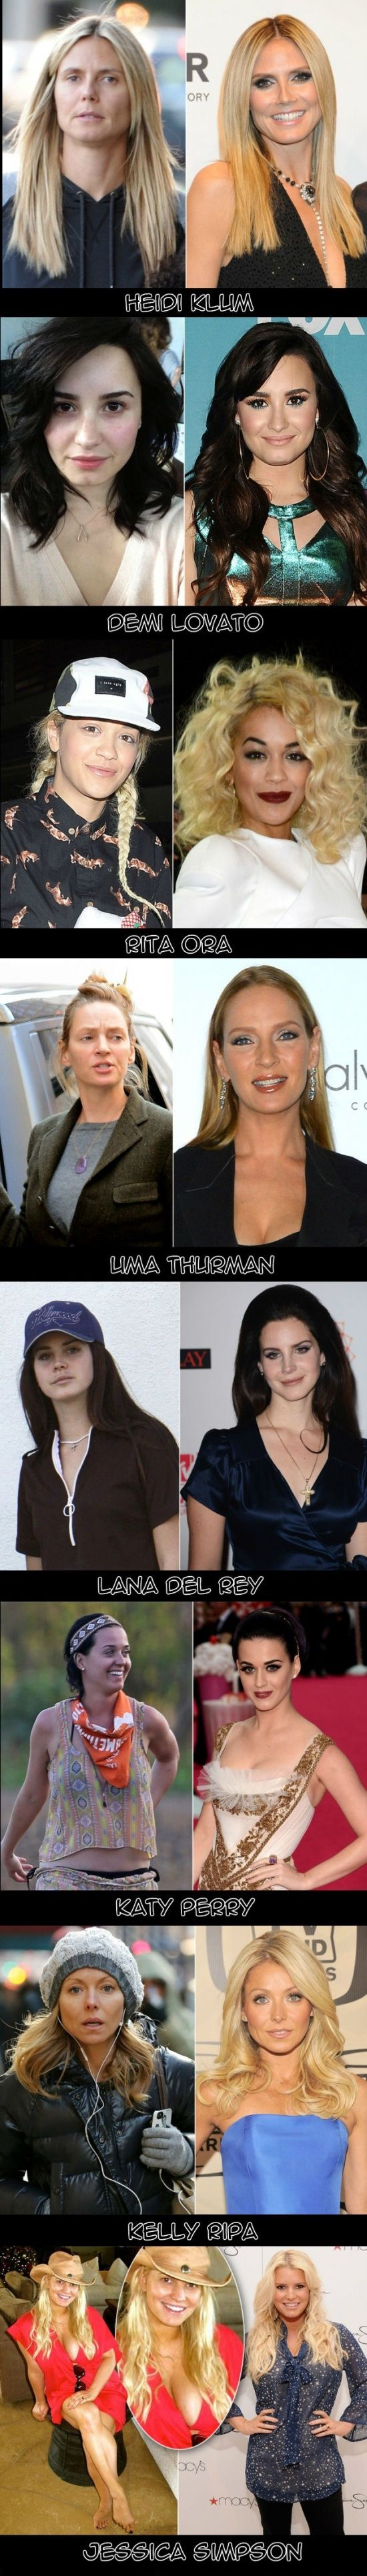 Who looks the best without makeup? I think Katy Perry looks very nice!